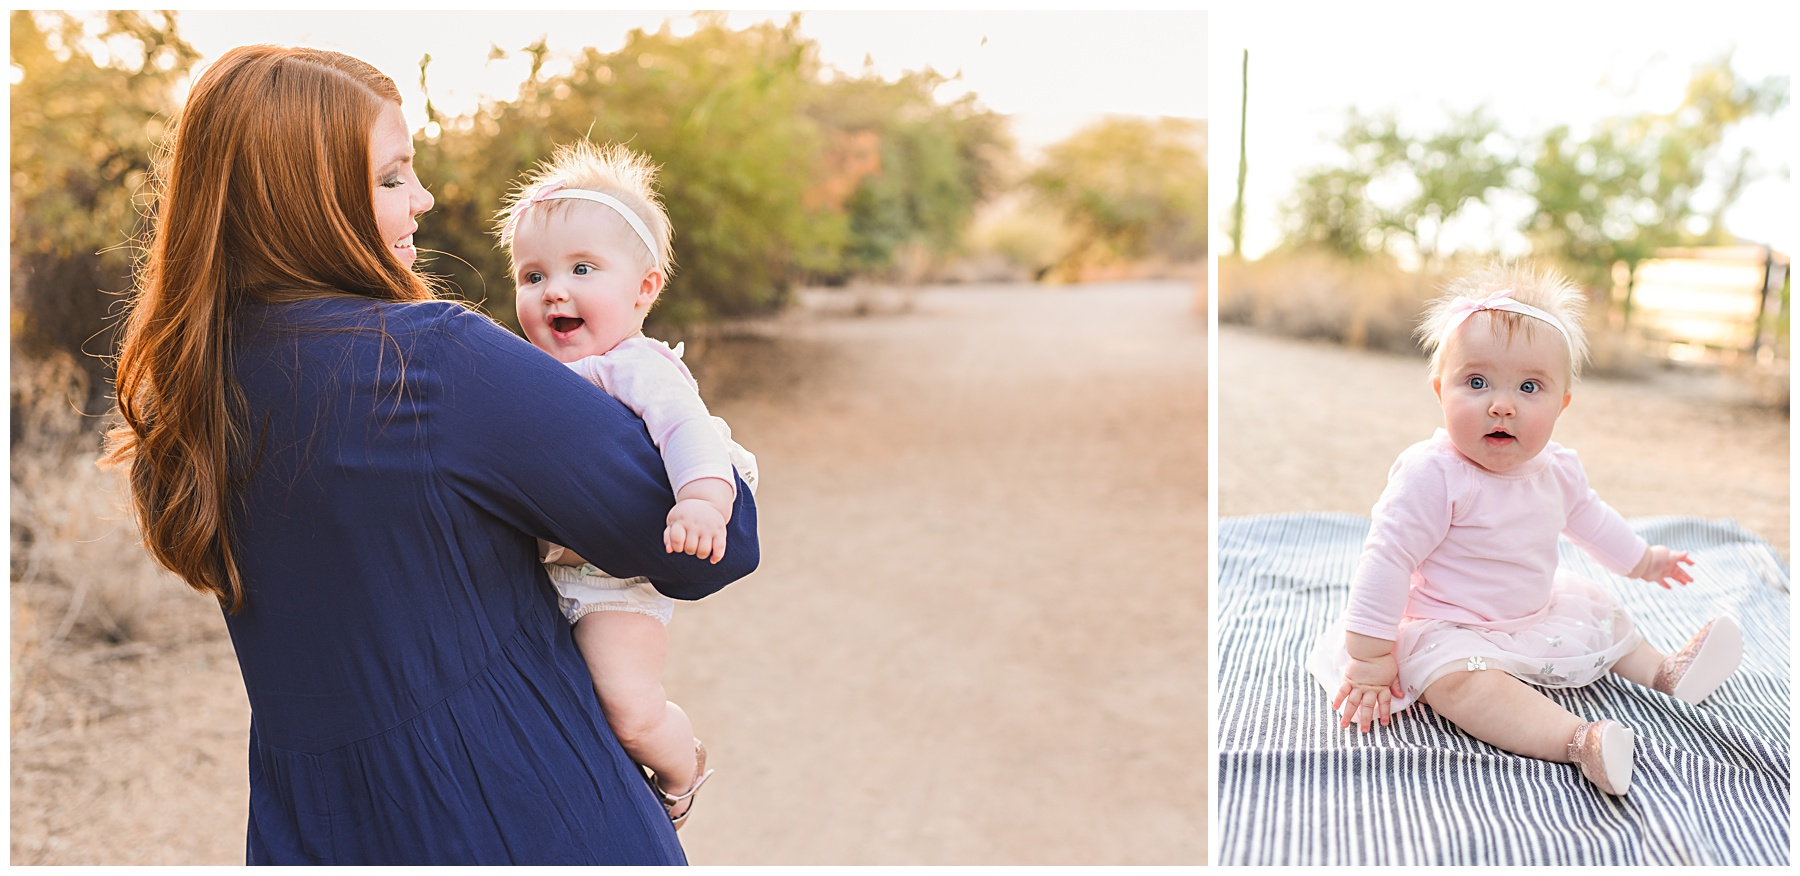 Mother Daughter Image in the Desert | SweetLife Photography